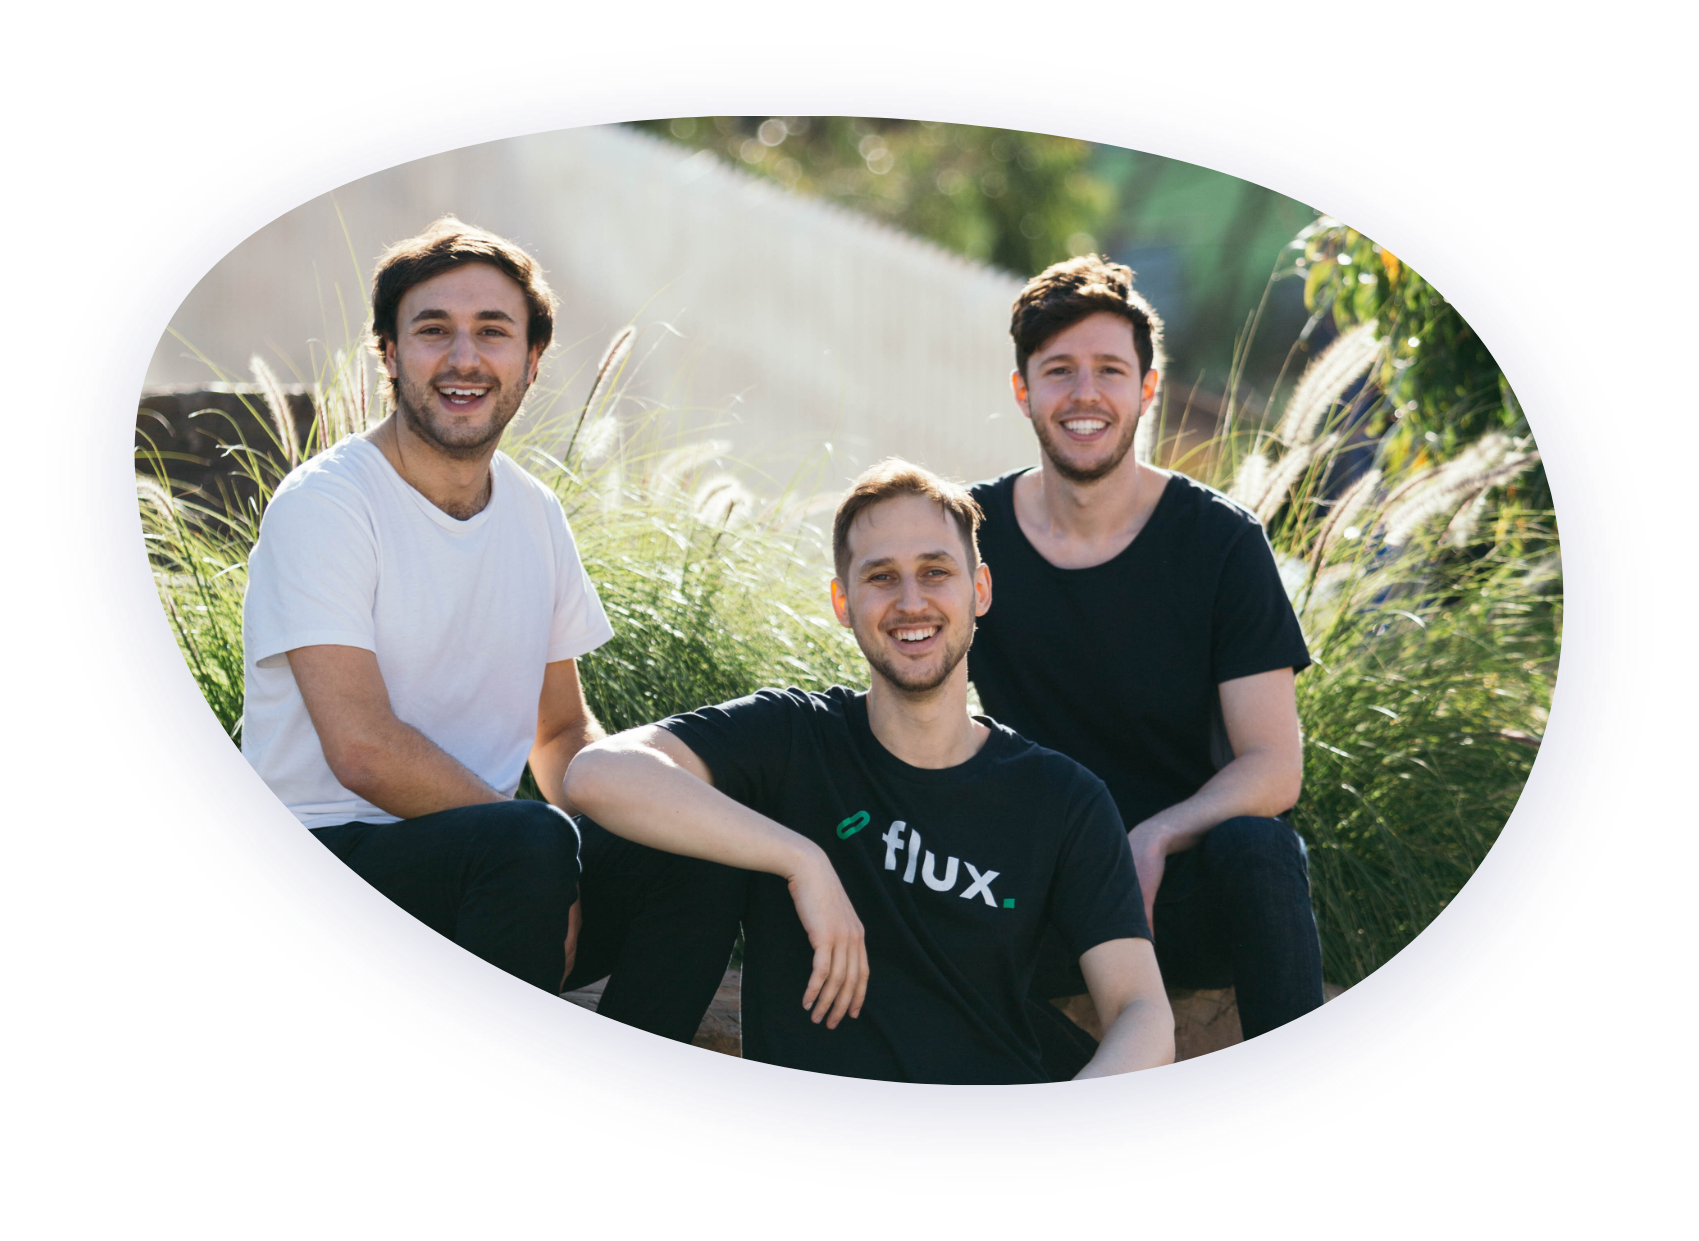 Image of Flux founders: Justin, Brett and Gus